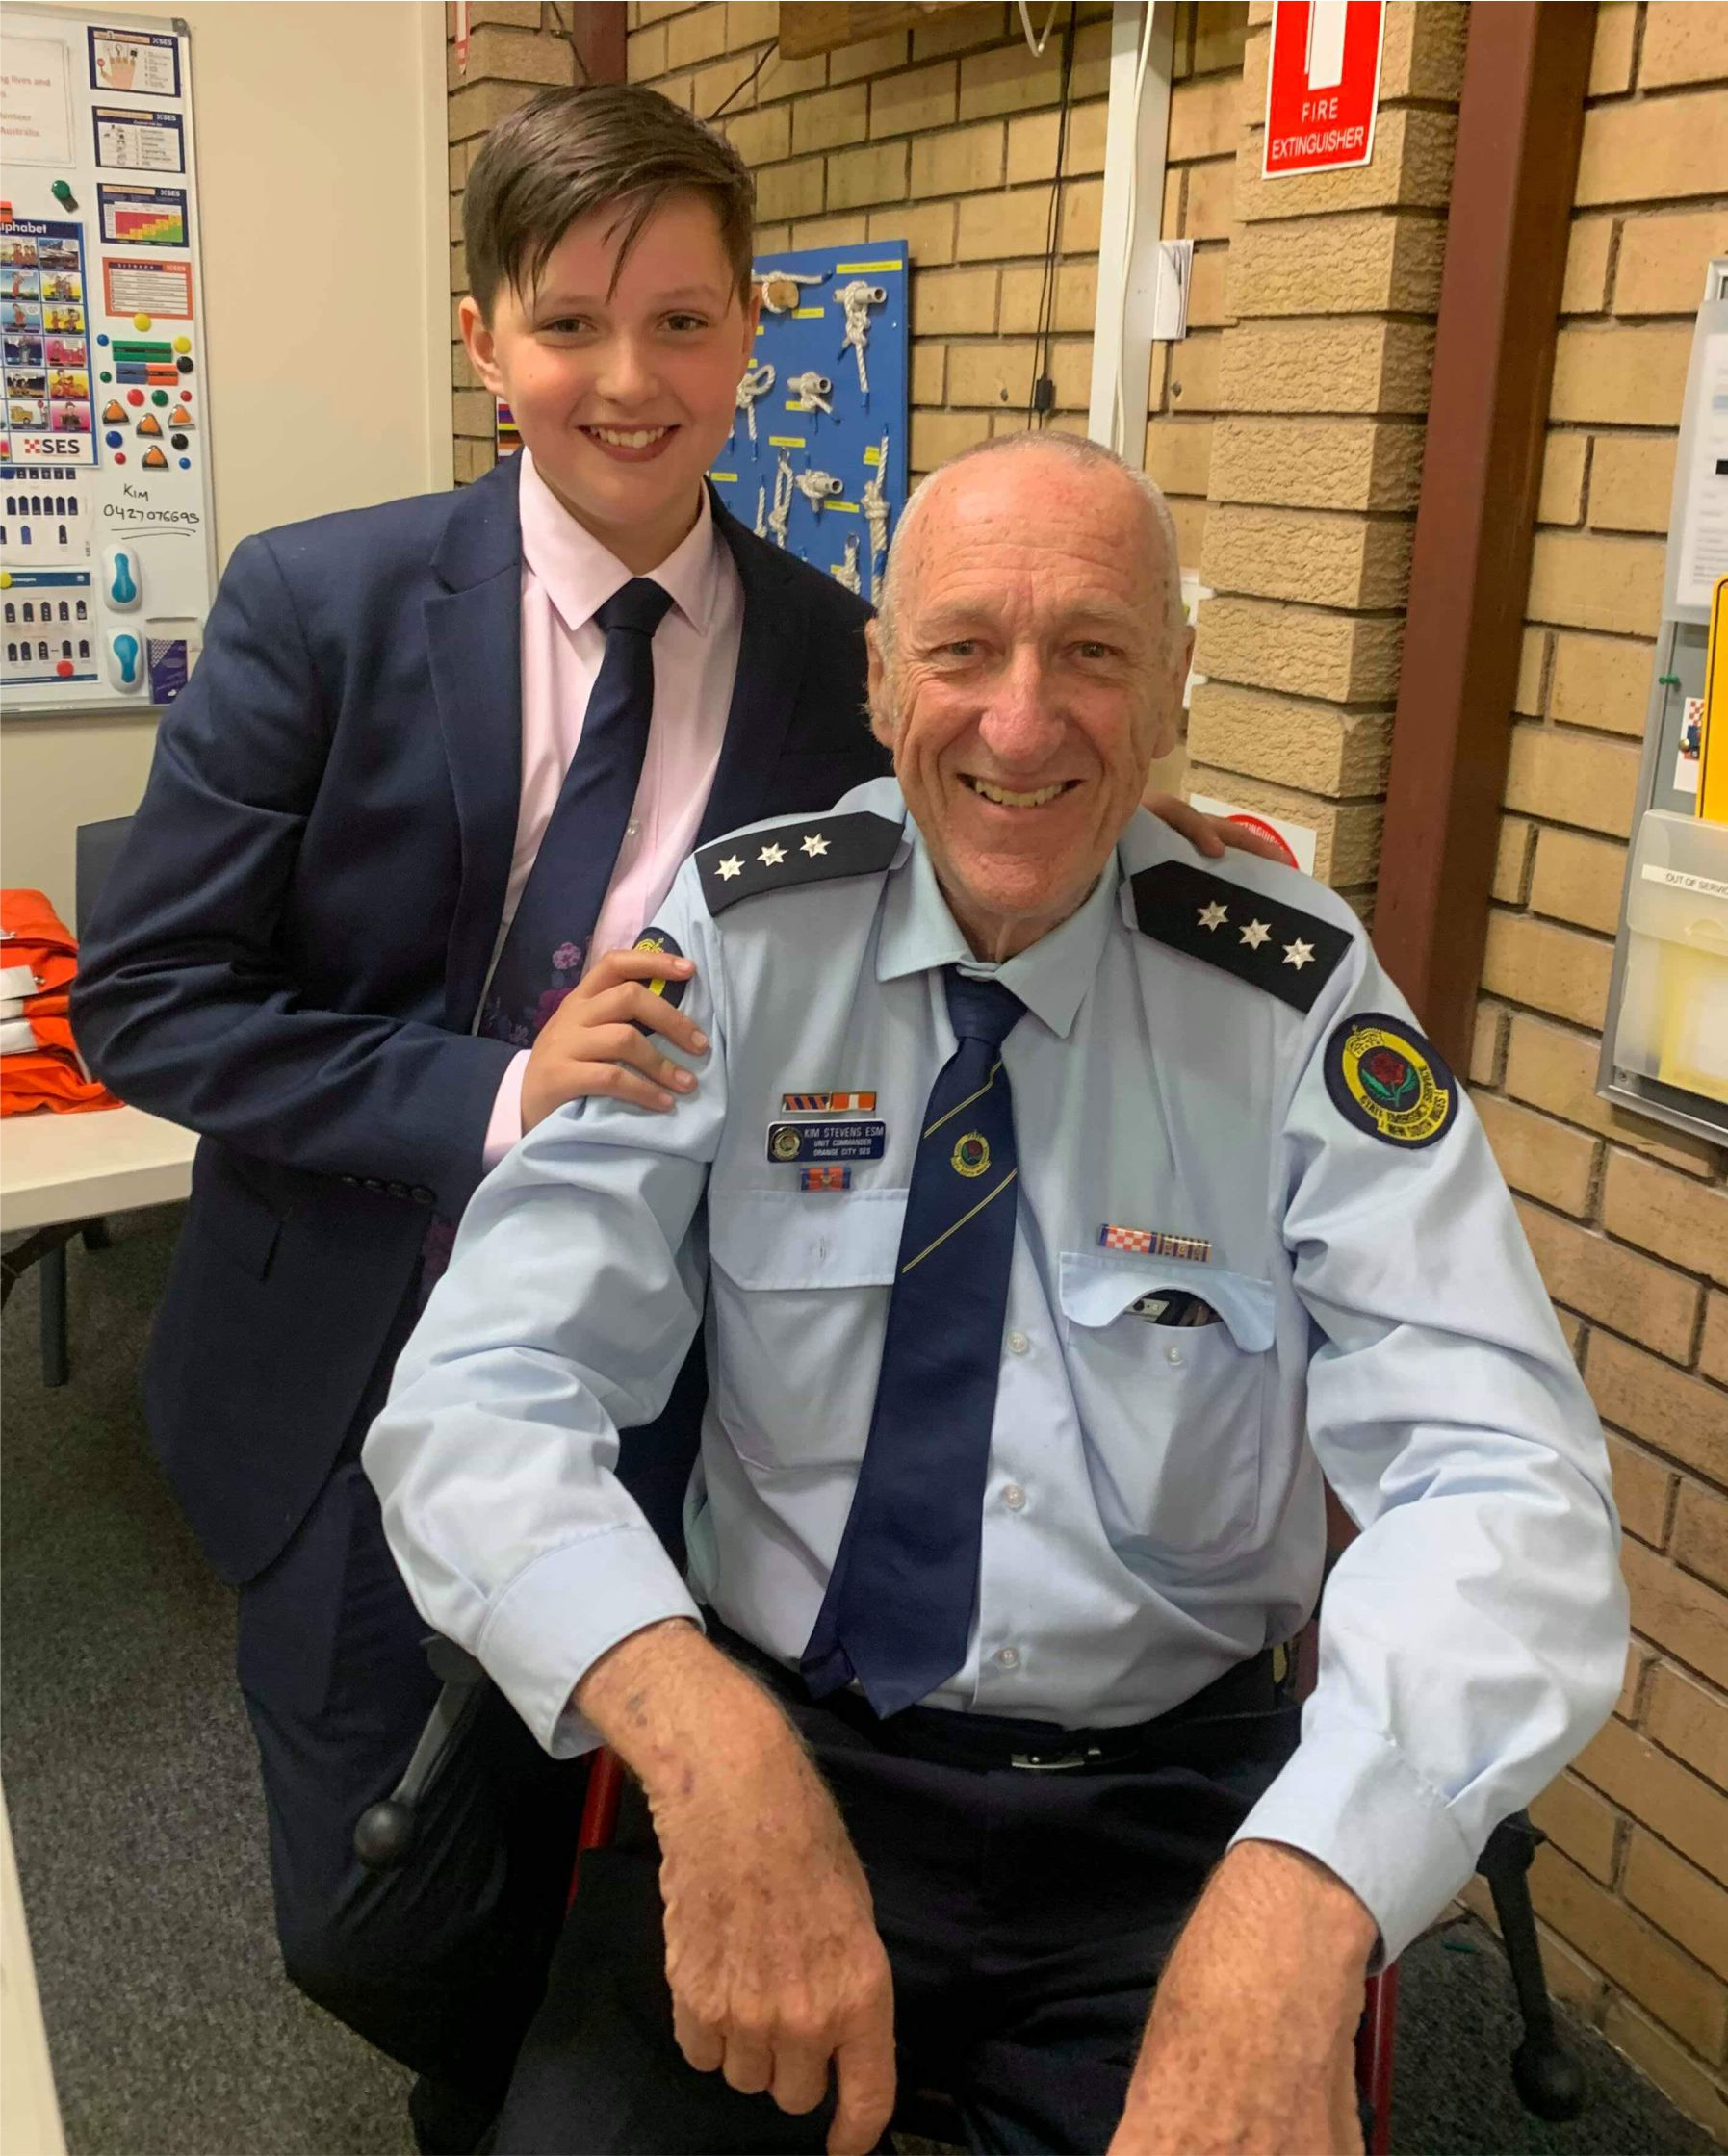 NSW SES Orange Commander hands reins to son